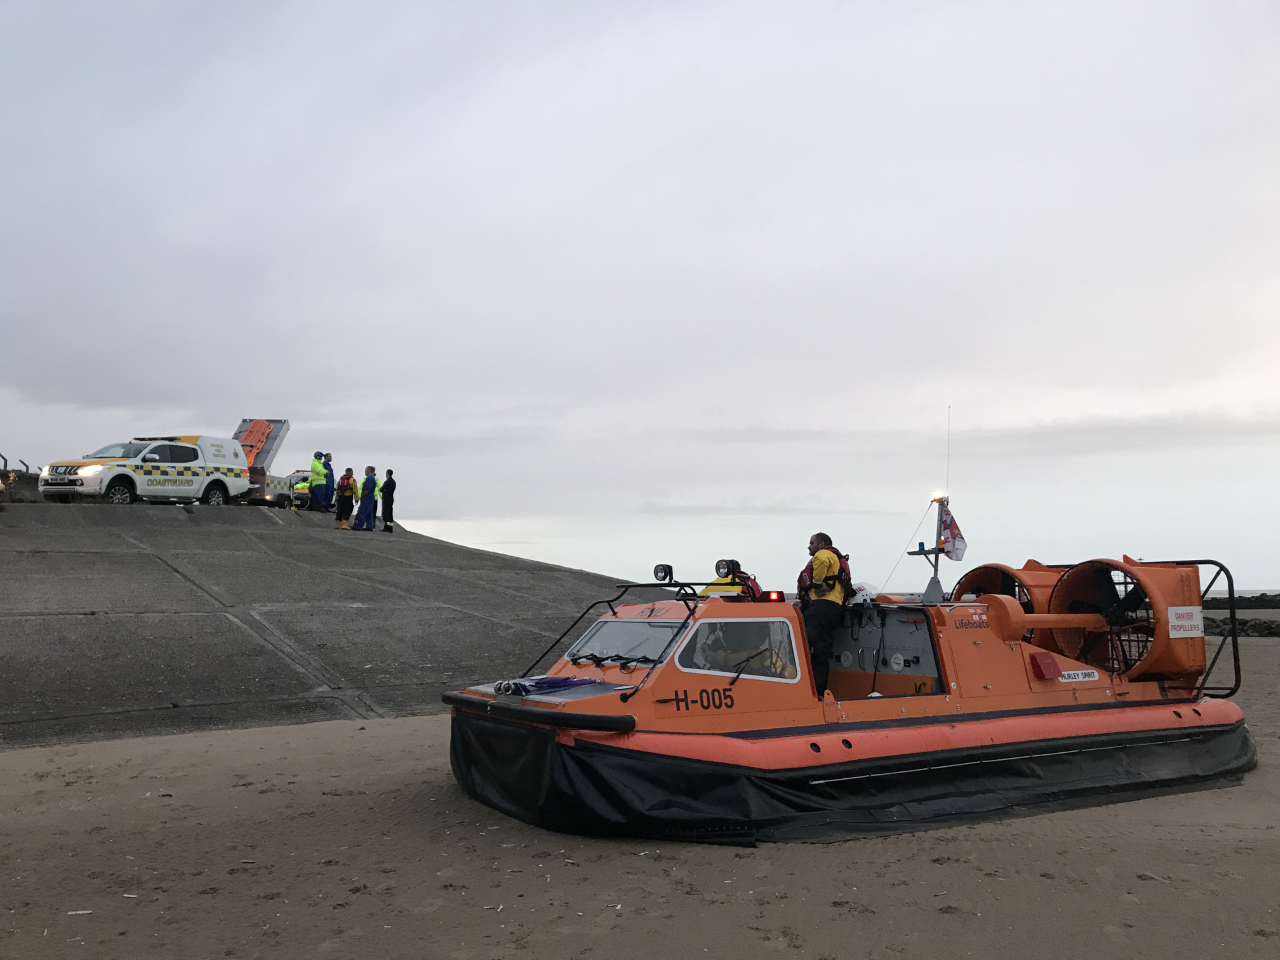 RNLI Hoylake Hovercraft H-005 Hurley Spirit responds to report of person in the water off Leasowe